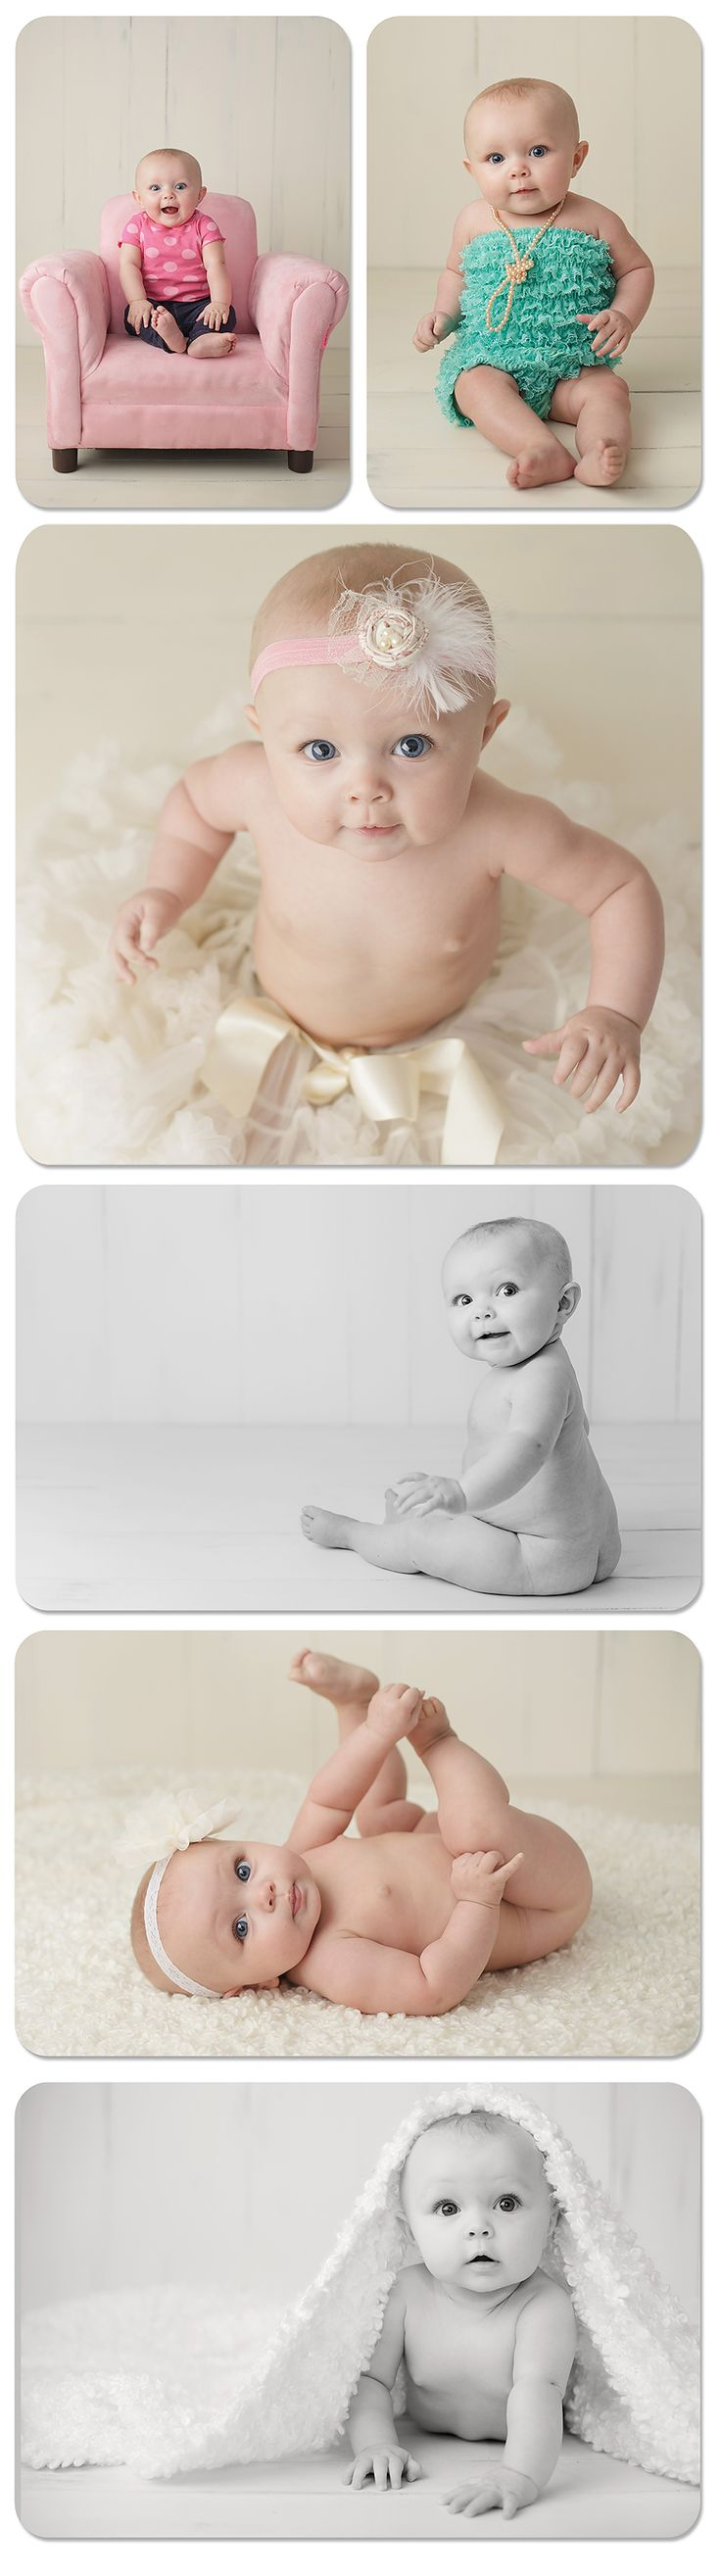 cute 6 Mo old photo shoot